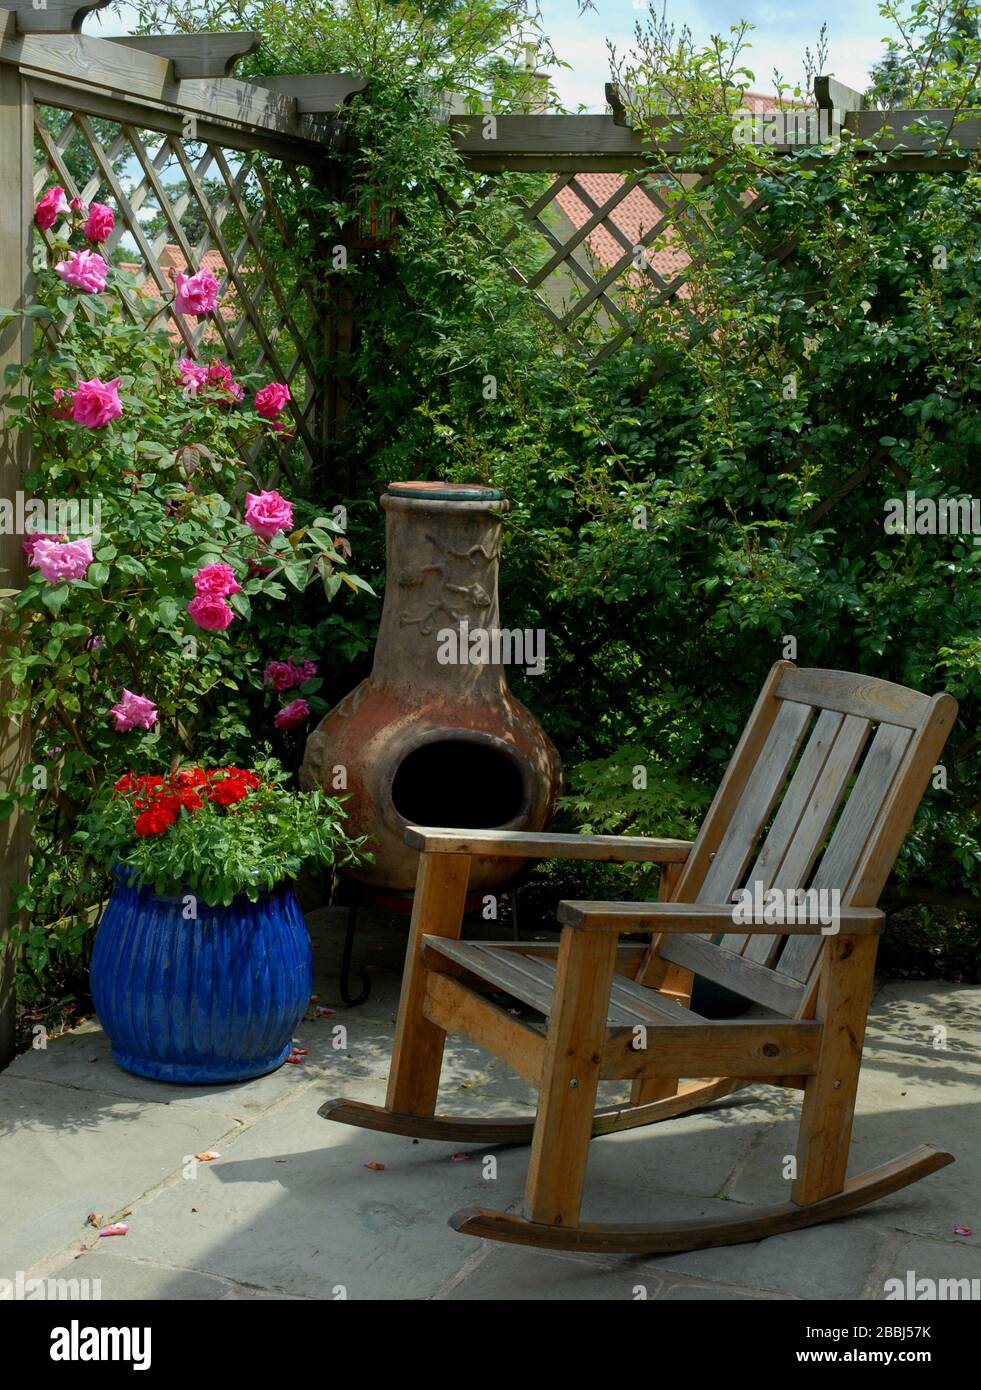 Picture of: Patio Corner With Wooden Rocker Enclosed With A Wooden Pergola And Trellis Adorned With Roses Including The Thornless Pink Rose Rosa Zephirin Droui Stock Photo Alamy